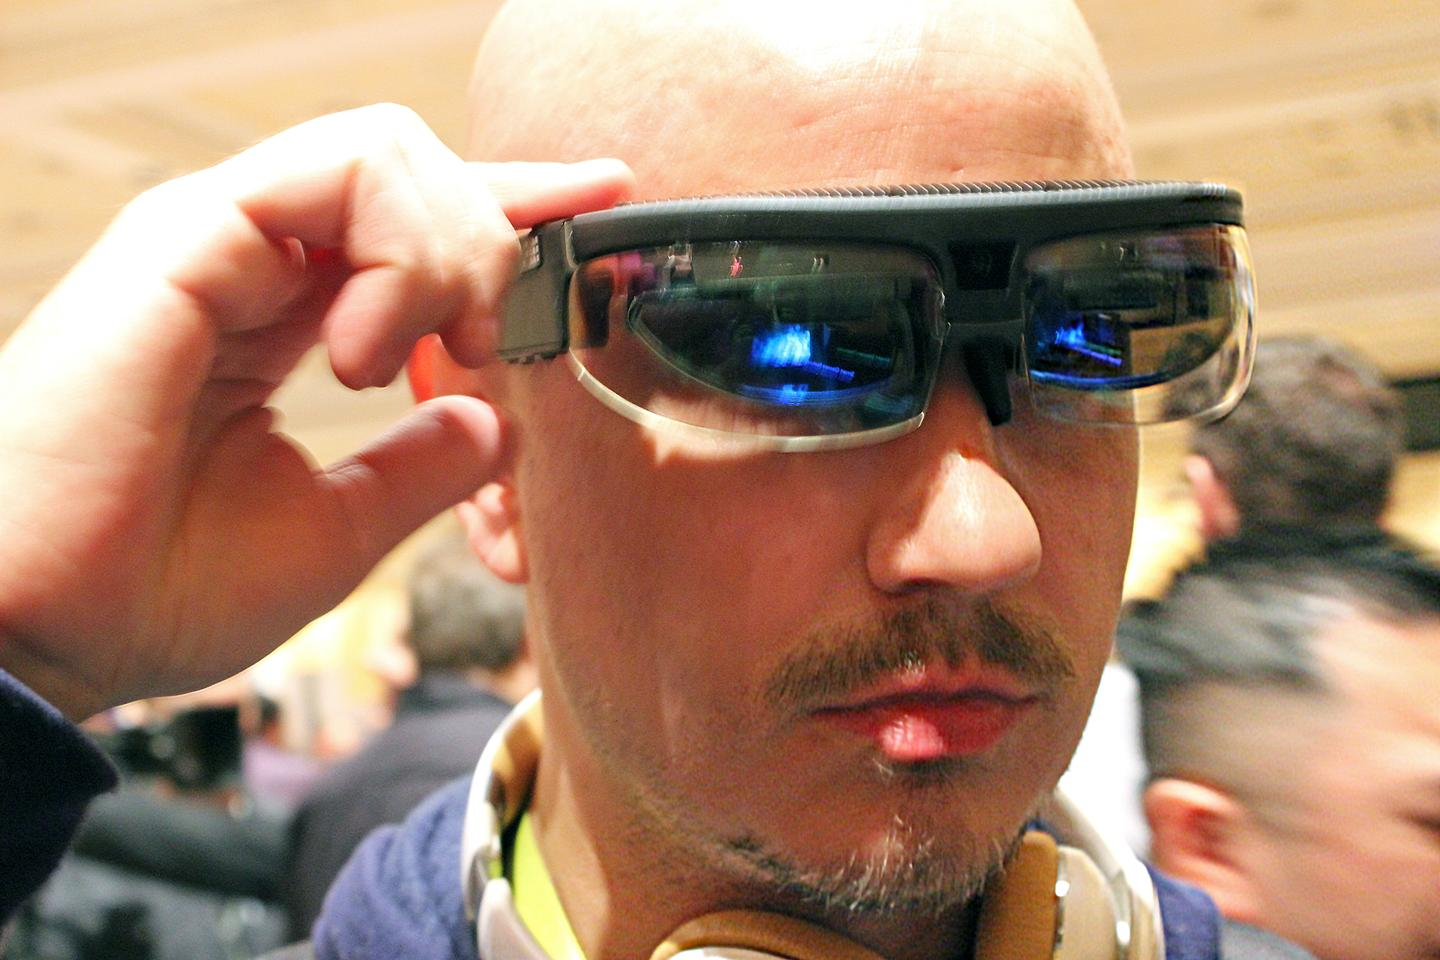 We try on one of the most sci-fi-like products we've ever used (Photo: Will Shanklin/Gizmag.com)